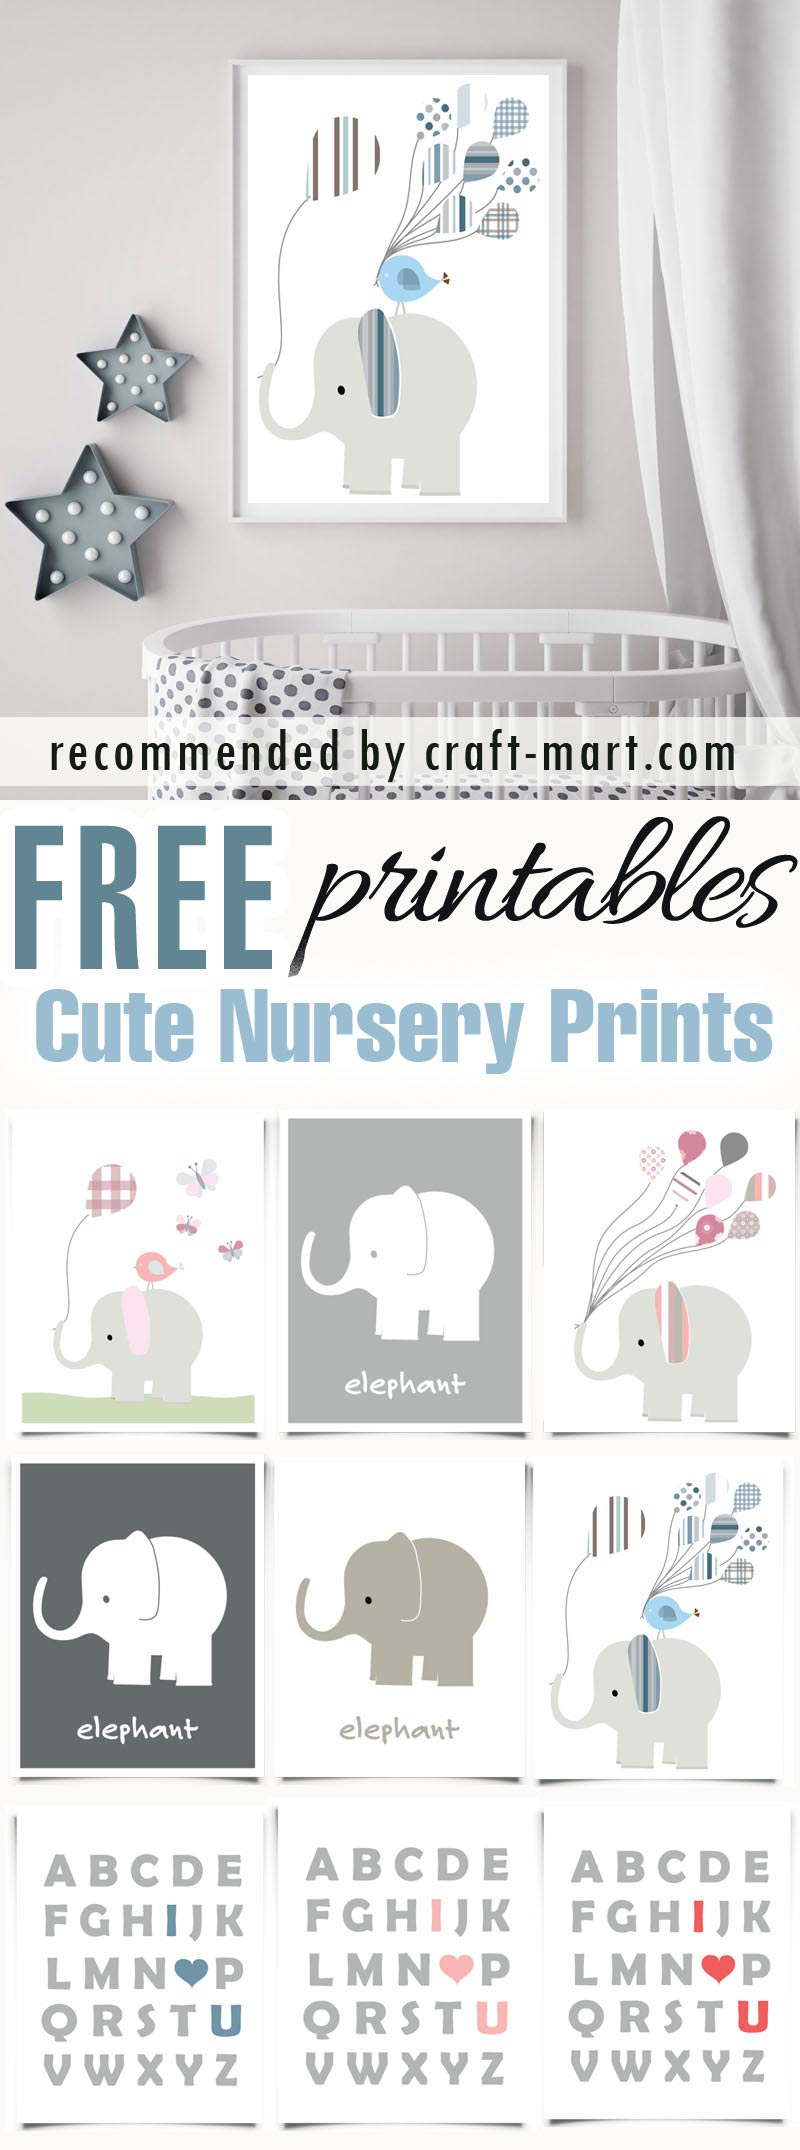 graphic about Free Printable Nursery Art named 100+ Most straightforward Absolutely free Nursery Printables and Wall Artwork - Craft-Mart